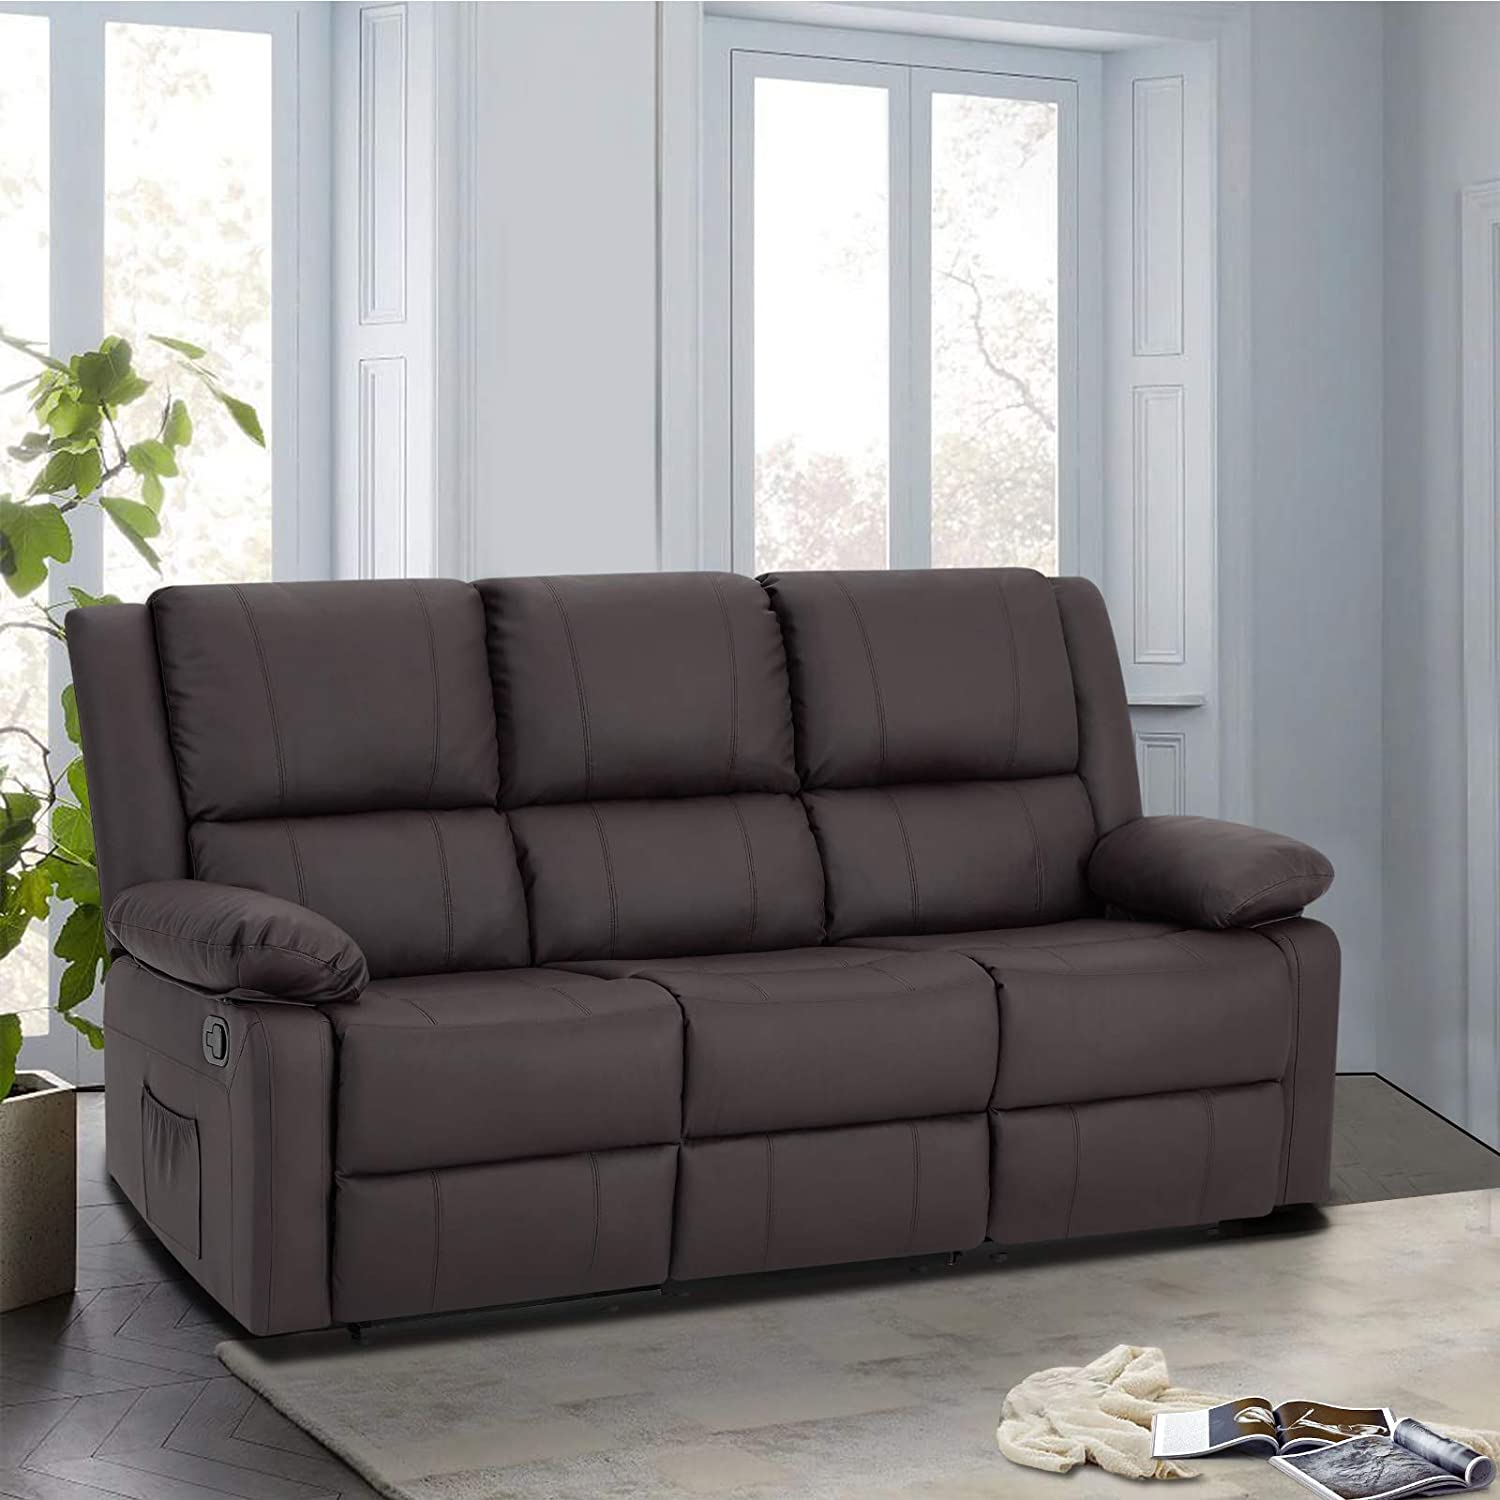 Esright 3 Seat Sofa Living Room Chair with Massage Heated